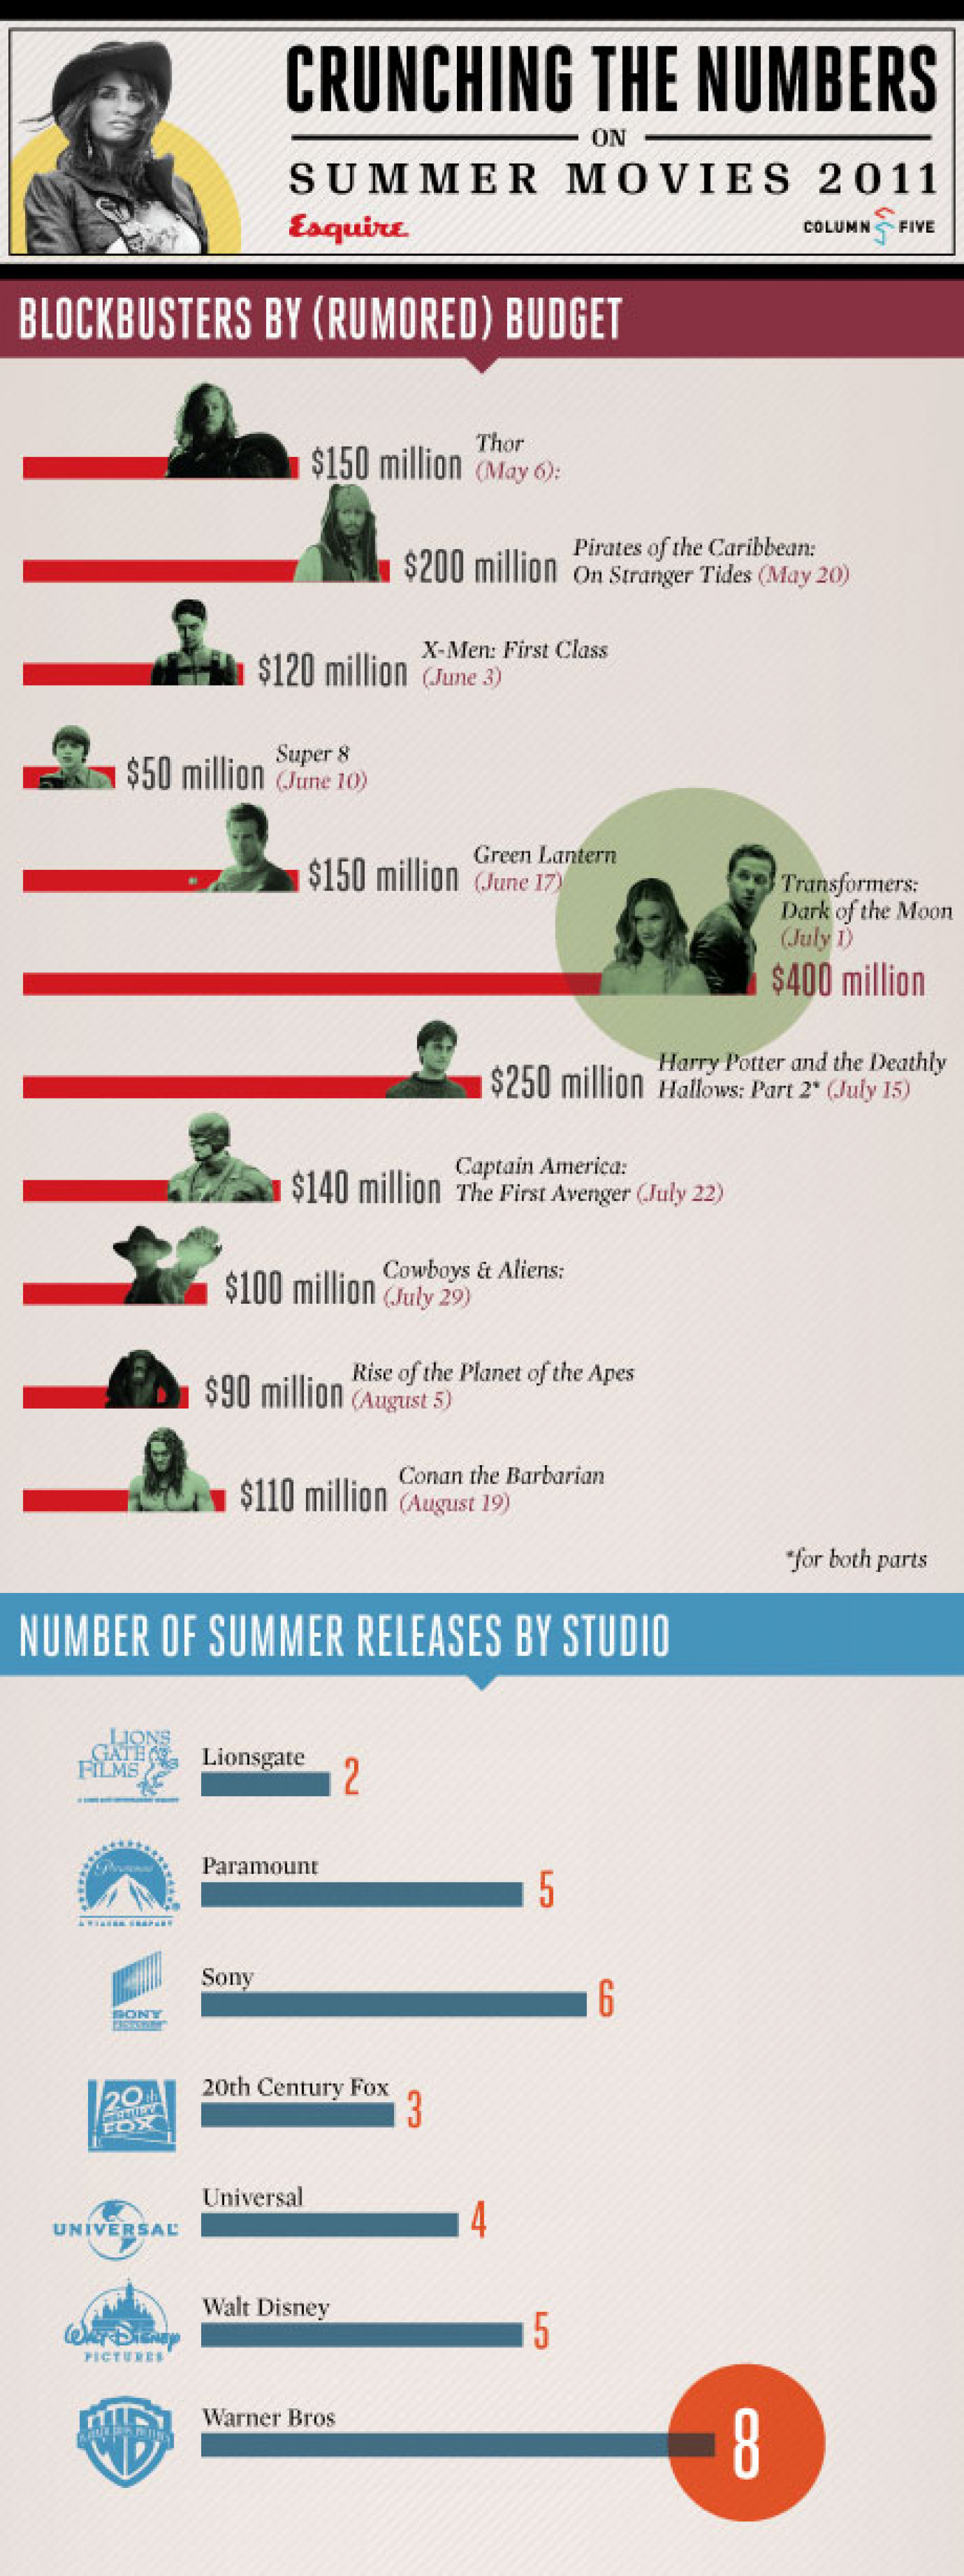 Crunching The Numbers On Summer Movies 2011 Infographic